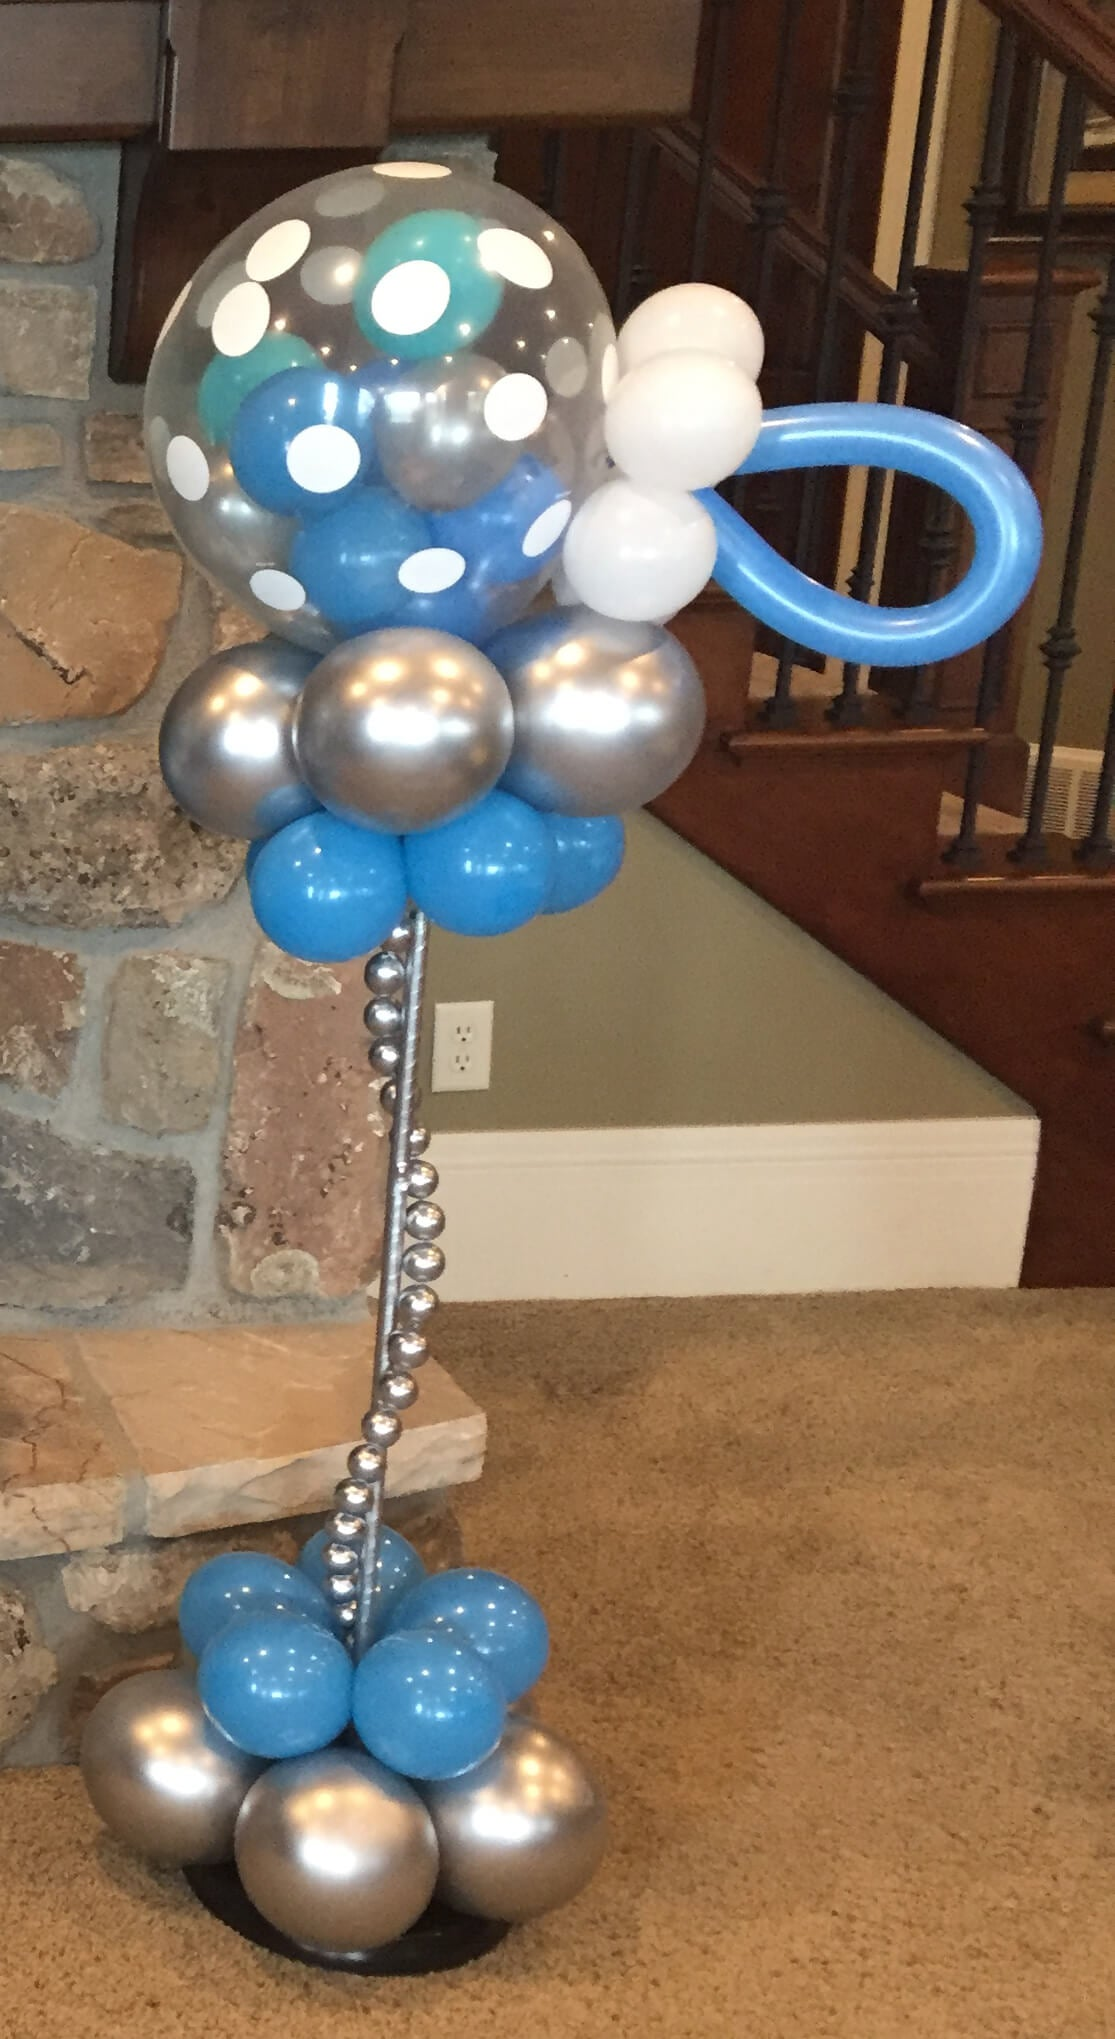 This beautiful balloon column is about 3-4' tall.